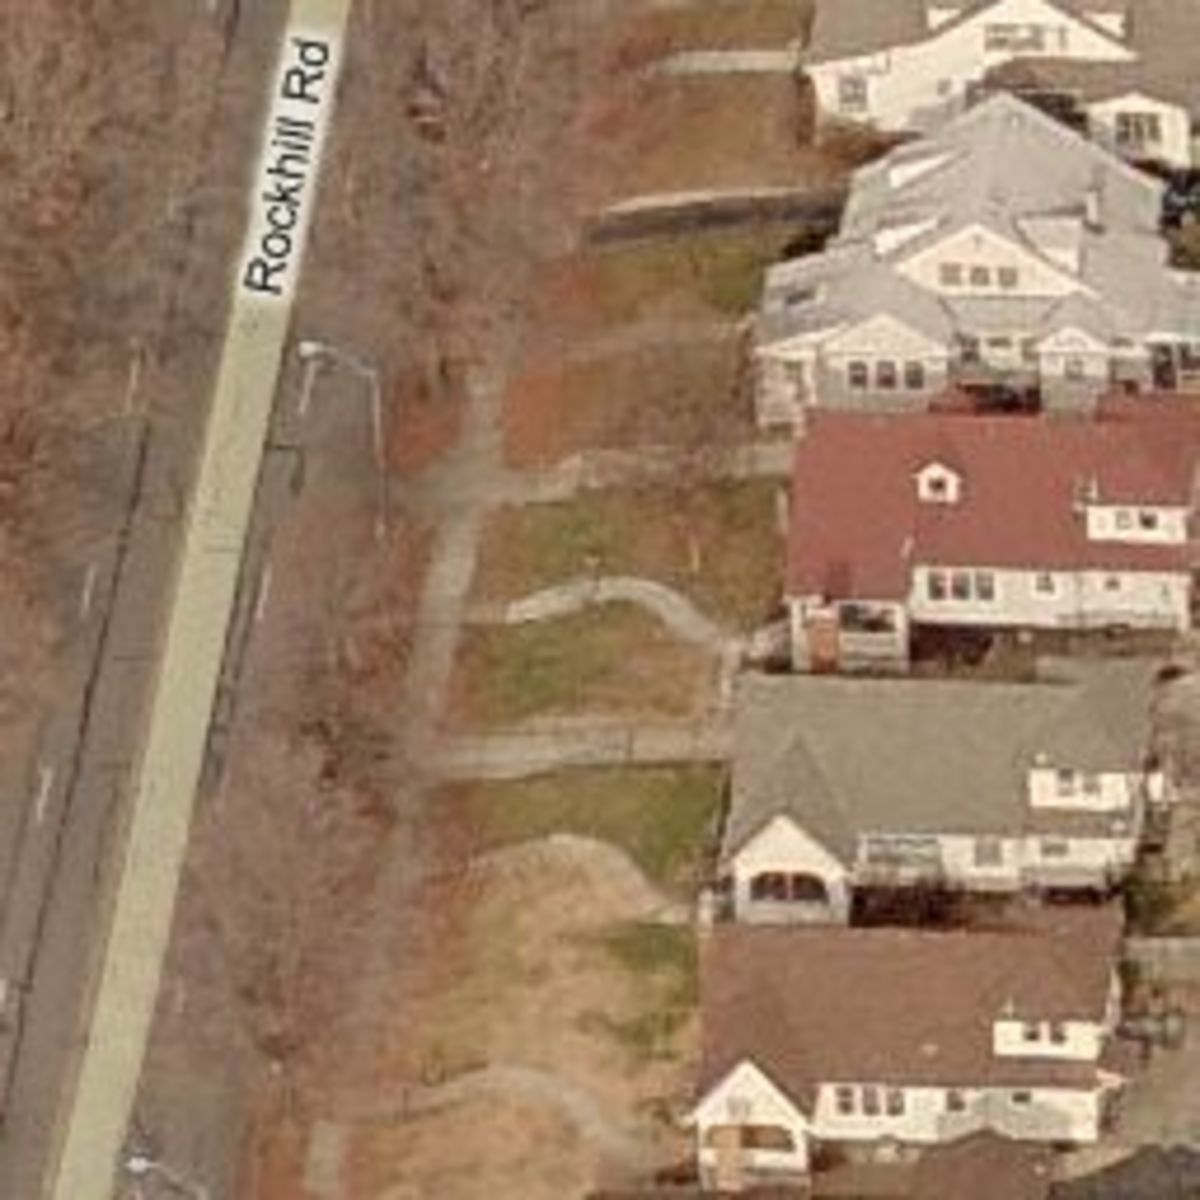 The house located at the top right with the grey roof is the location of Leila's murder.  The house located at Rockhill Road was built in 1924.